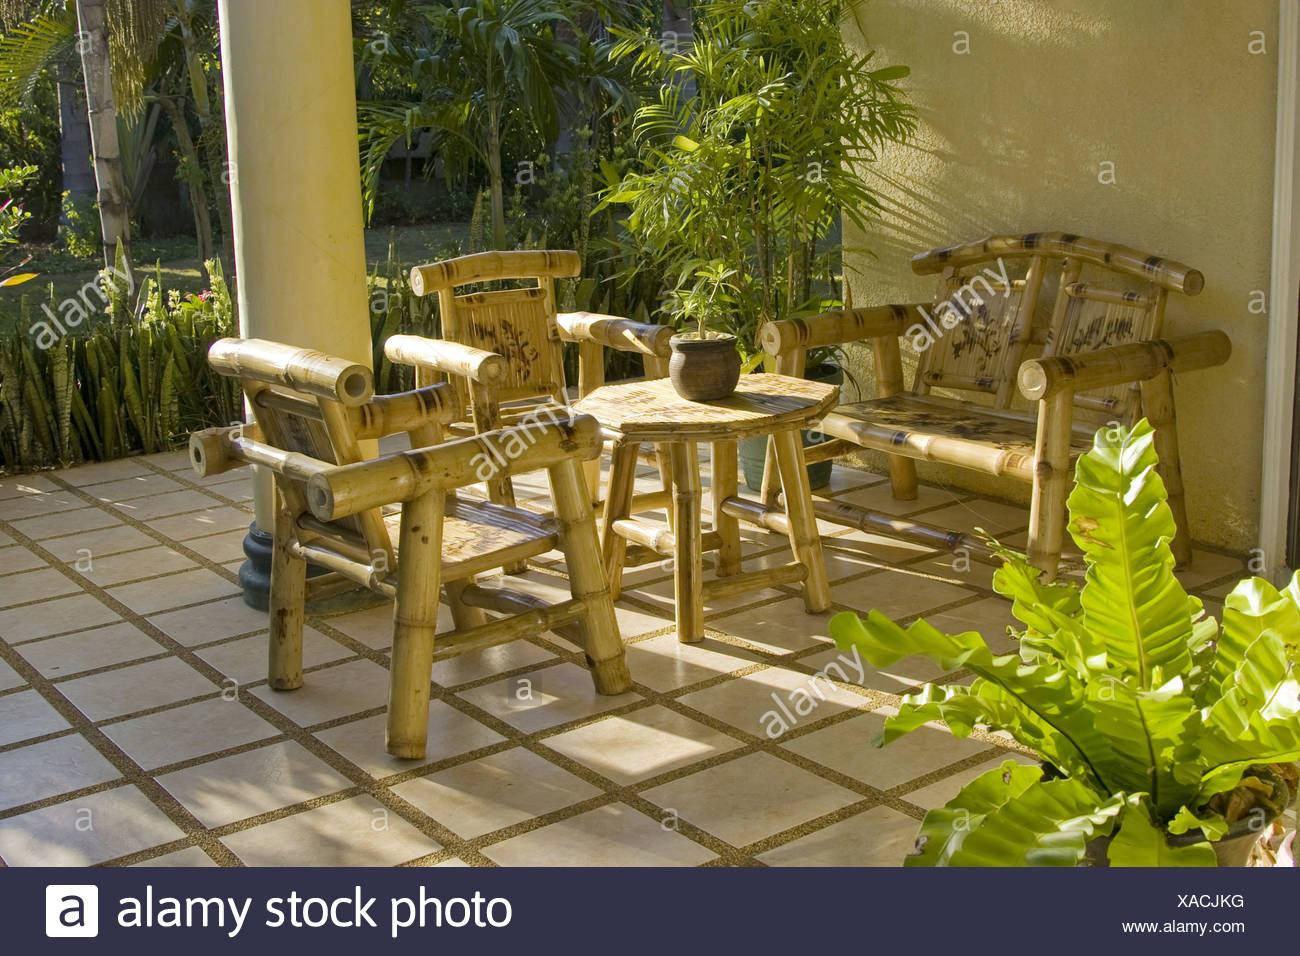 Garden furniture chairs table made from bamboo Stock Photo - Alamy